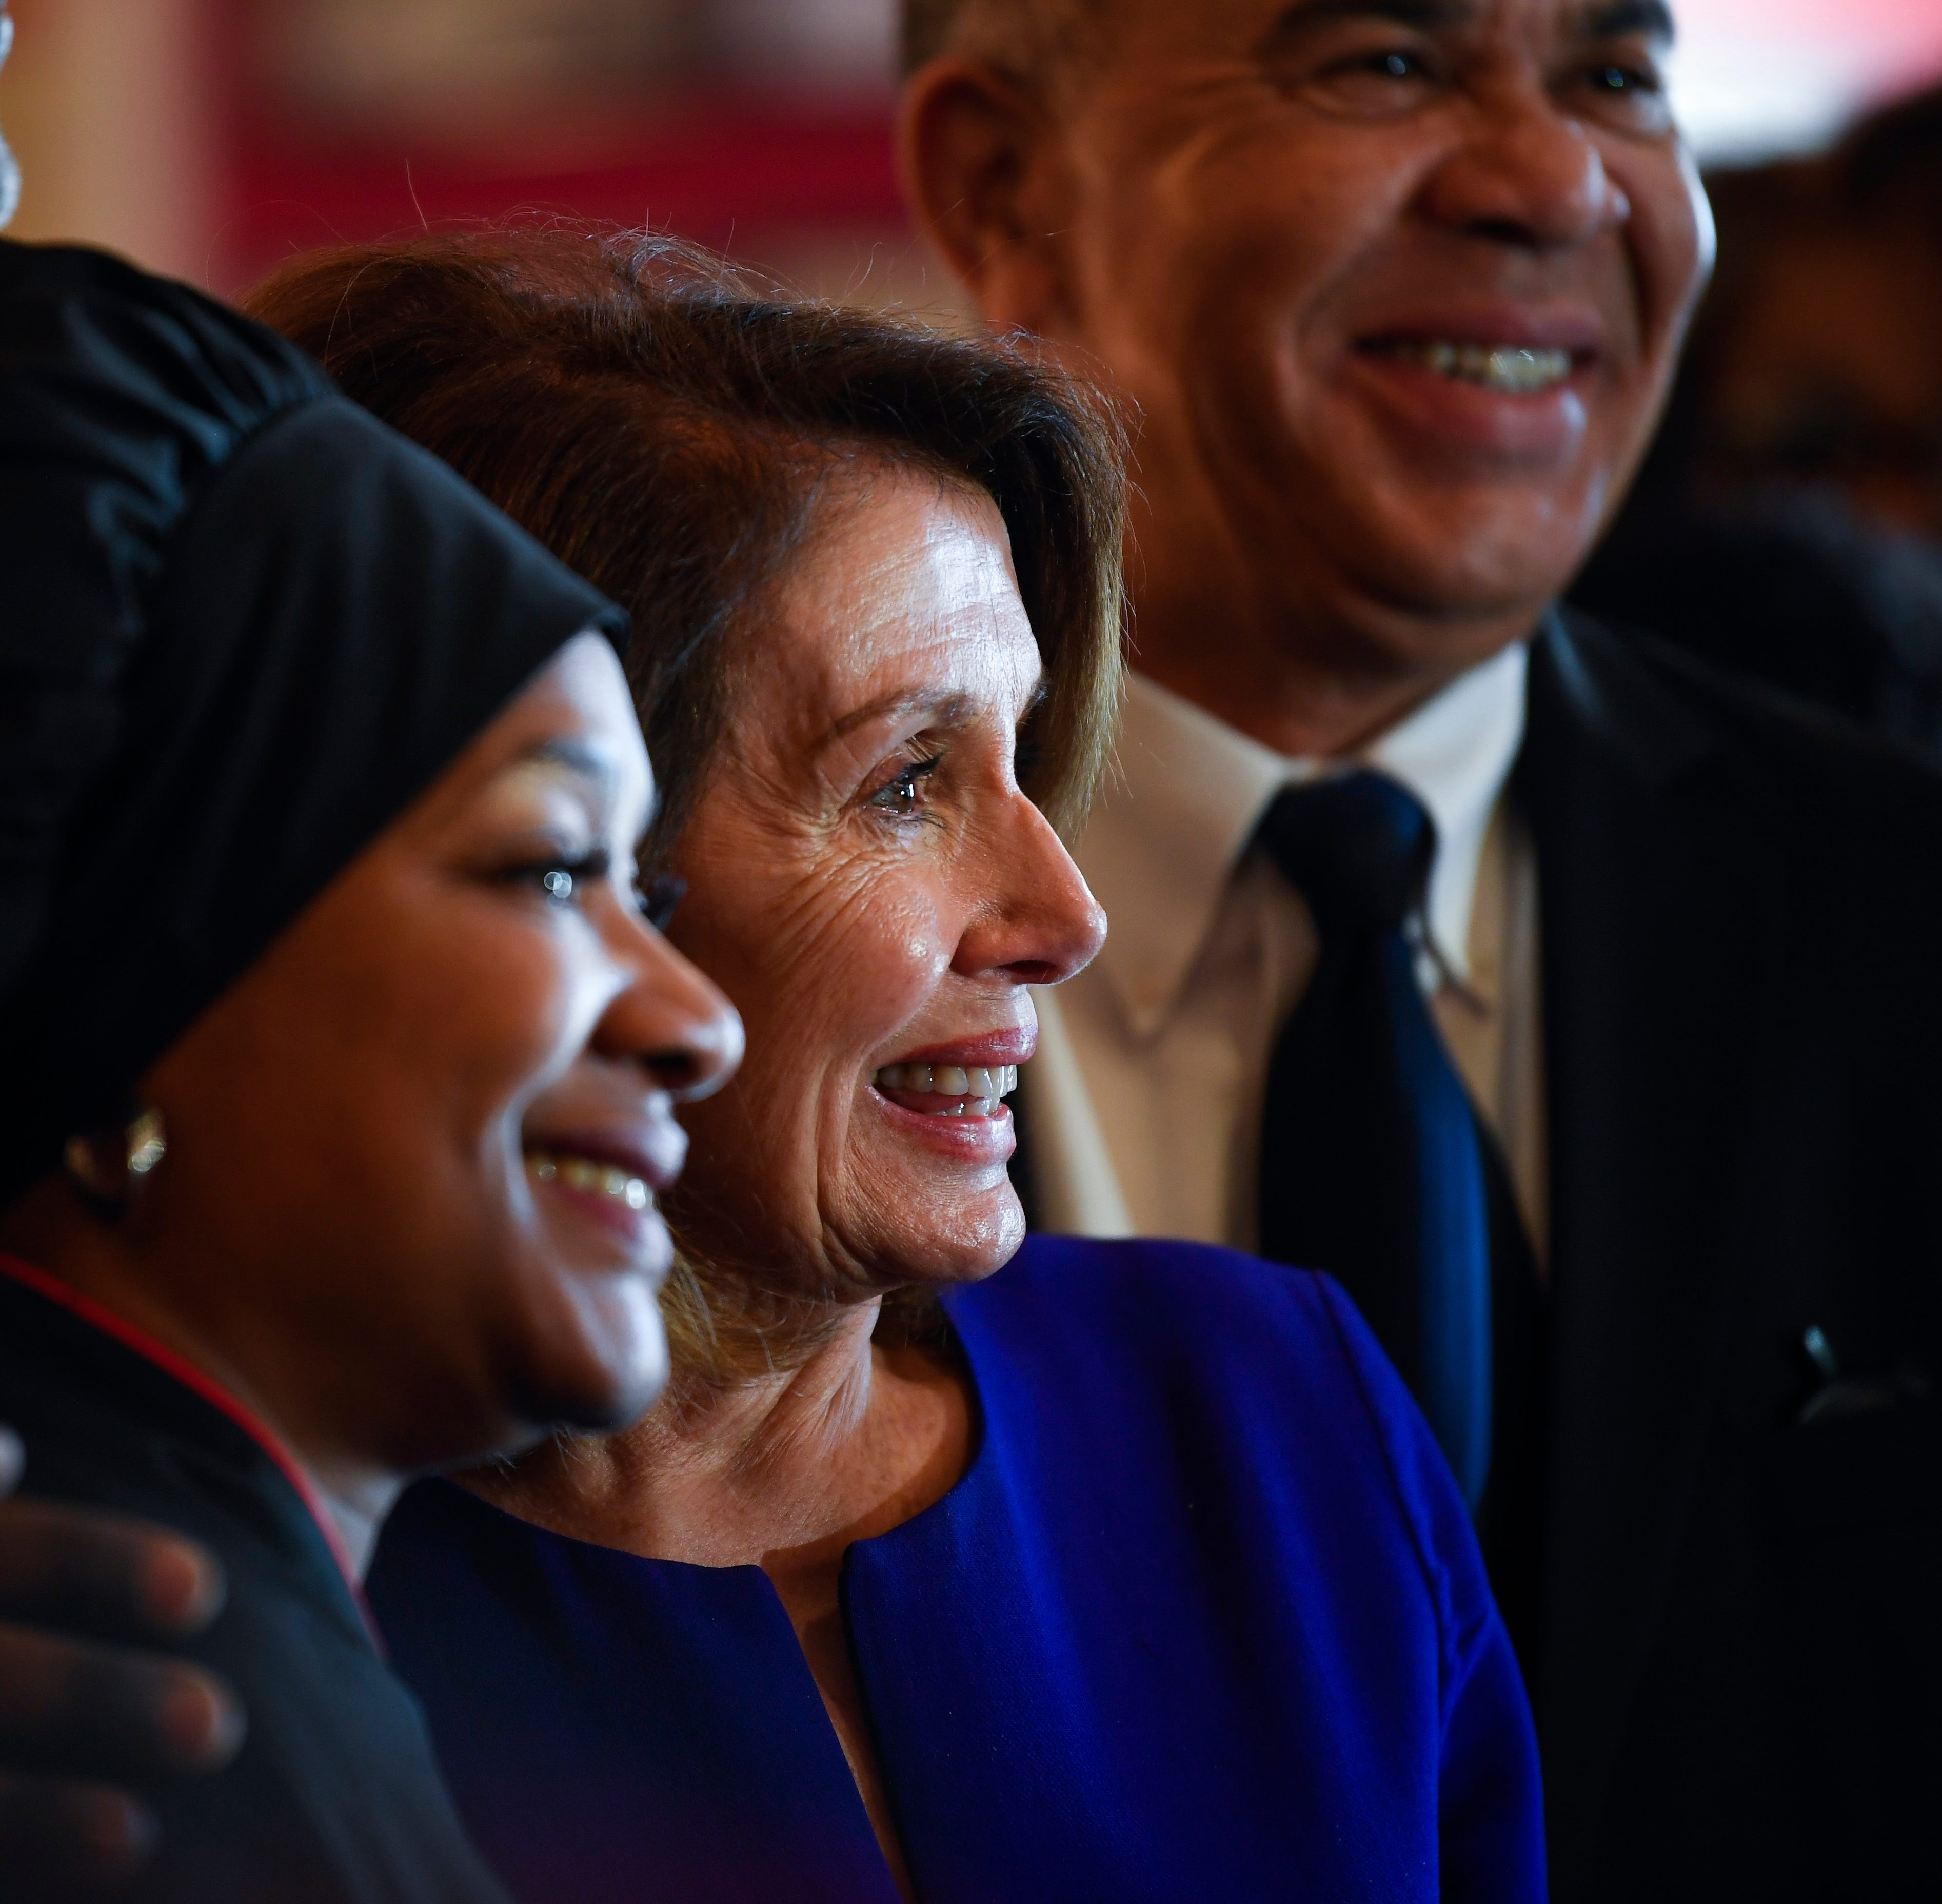 Speaker of the House Nancy Pelosi with Cathy Jenkins, the owner of Cathy's Kitchen in Ferguson, Mo. Rep. Lacy Clay, who represents Ferguson, is in the background.